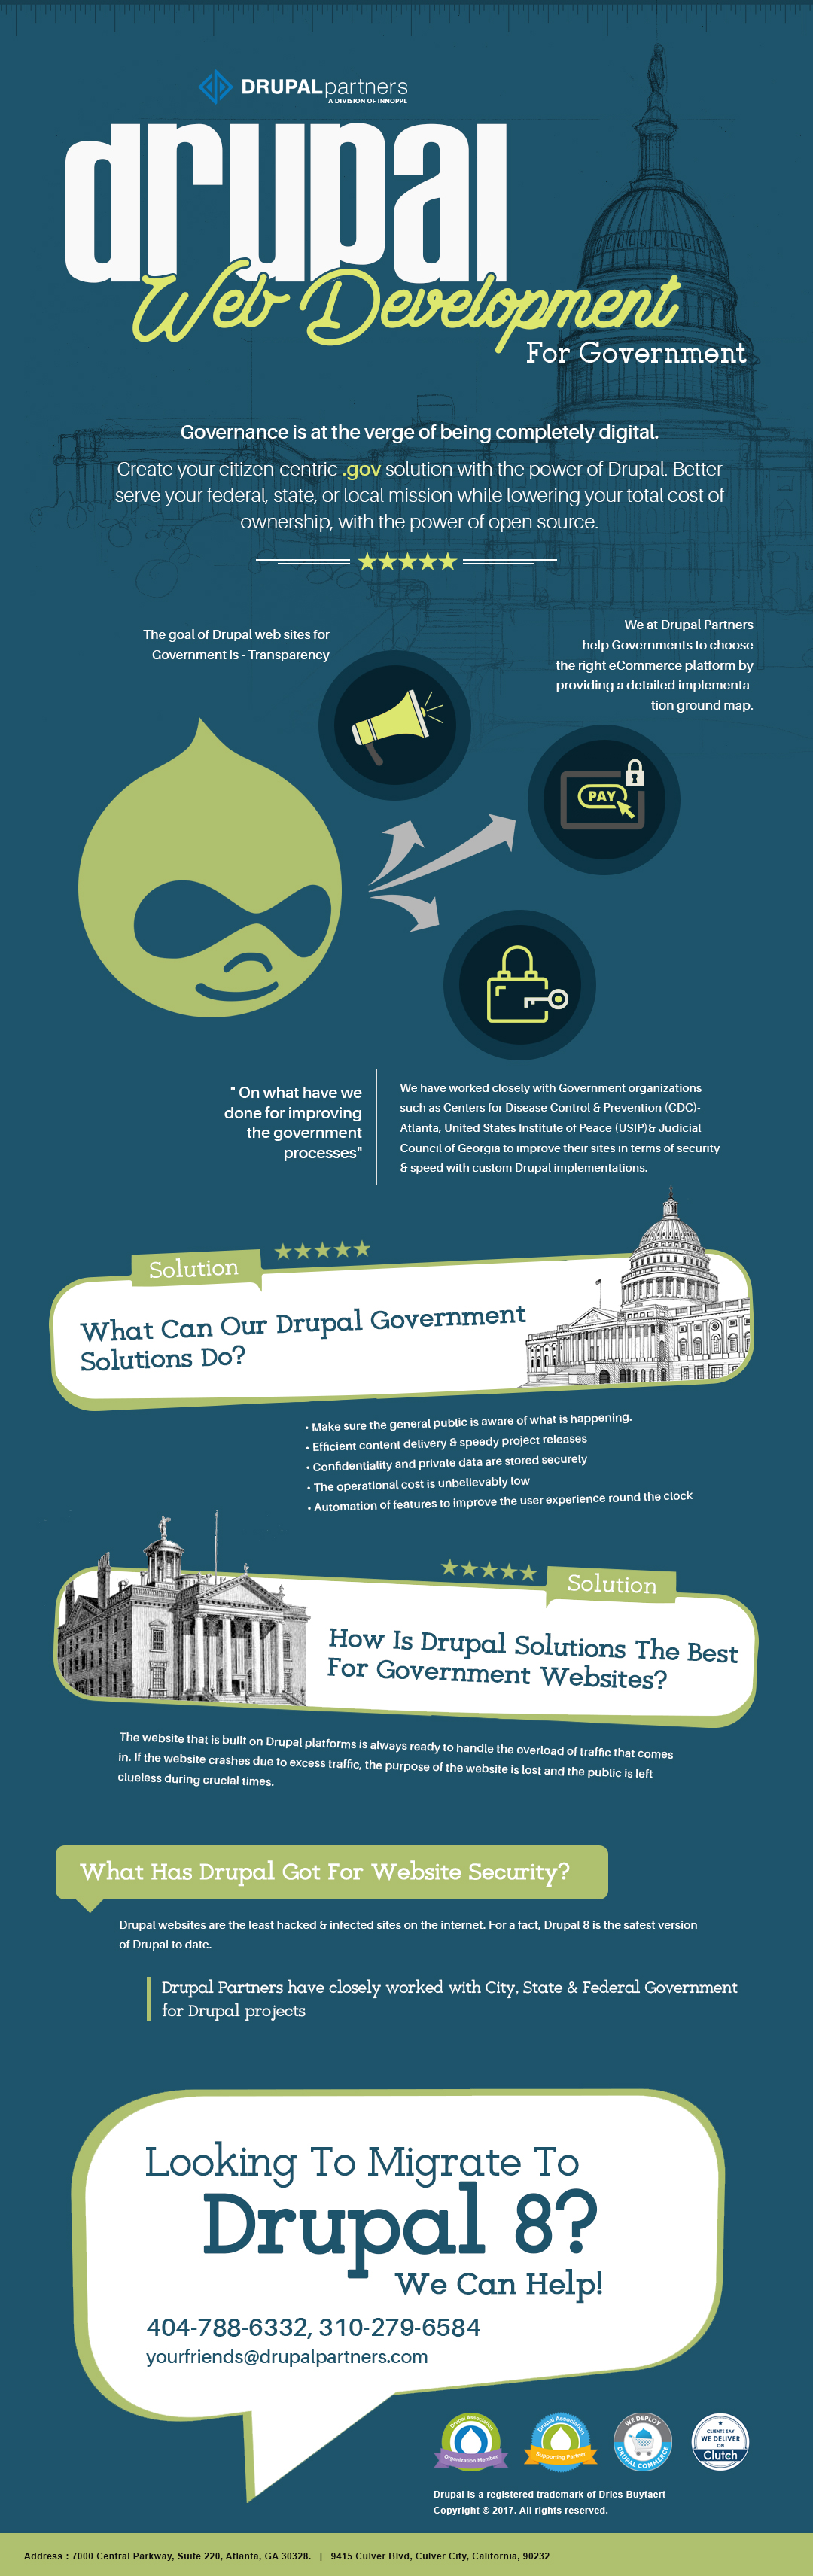 Drupal Web Development For Government Infographics